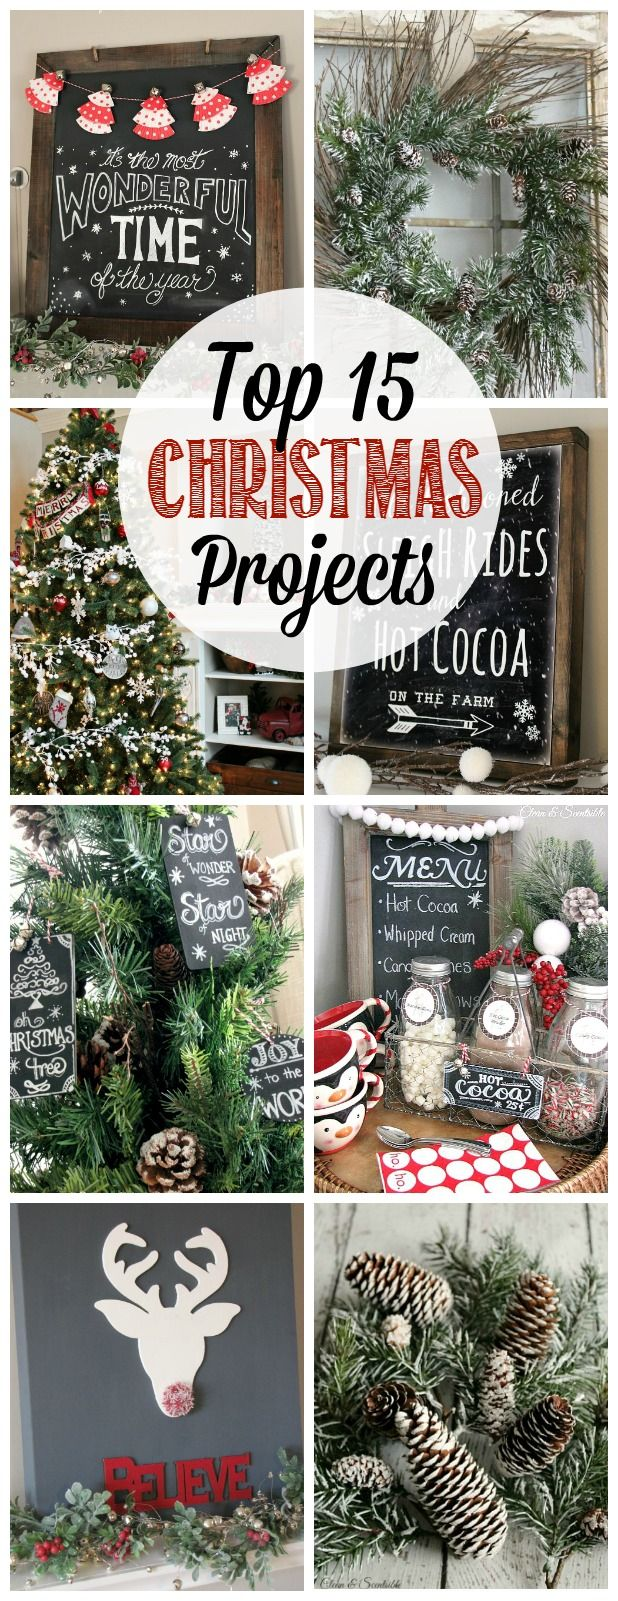 Great collection of Christmas projects - Christmas crafts, fun food recipes, and holiday home decor ideas.: